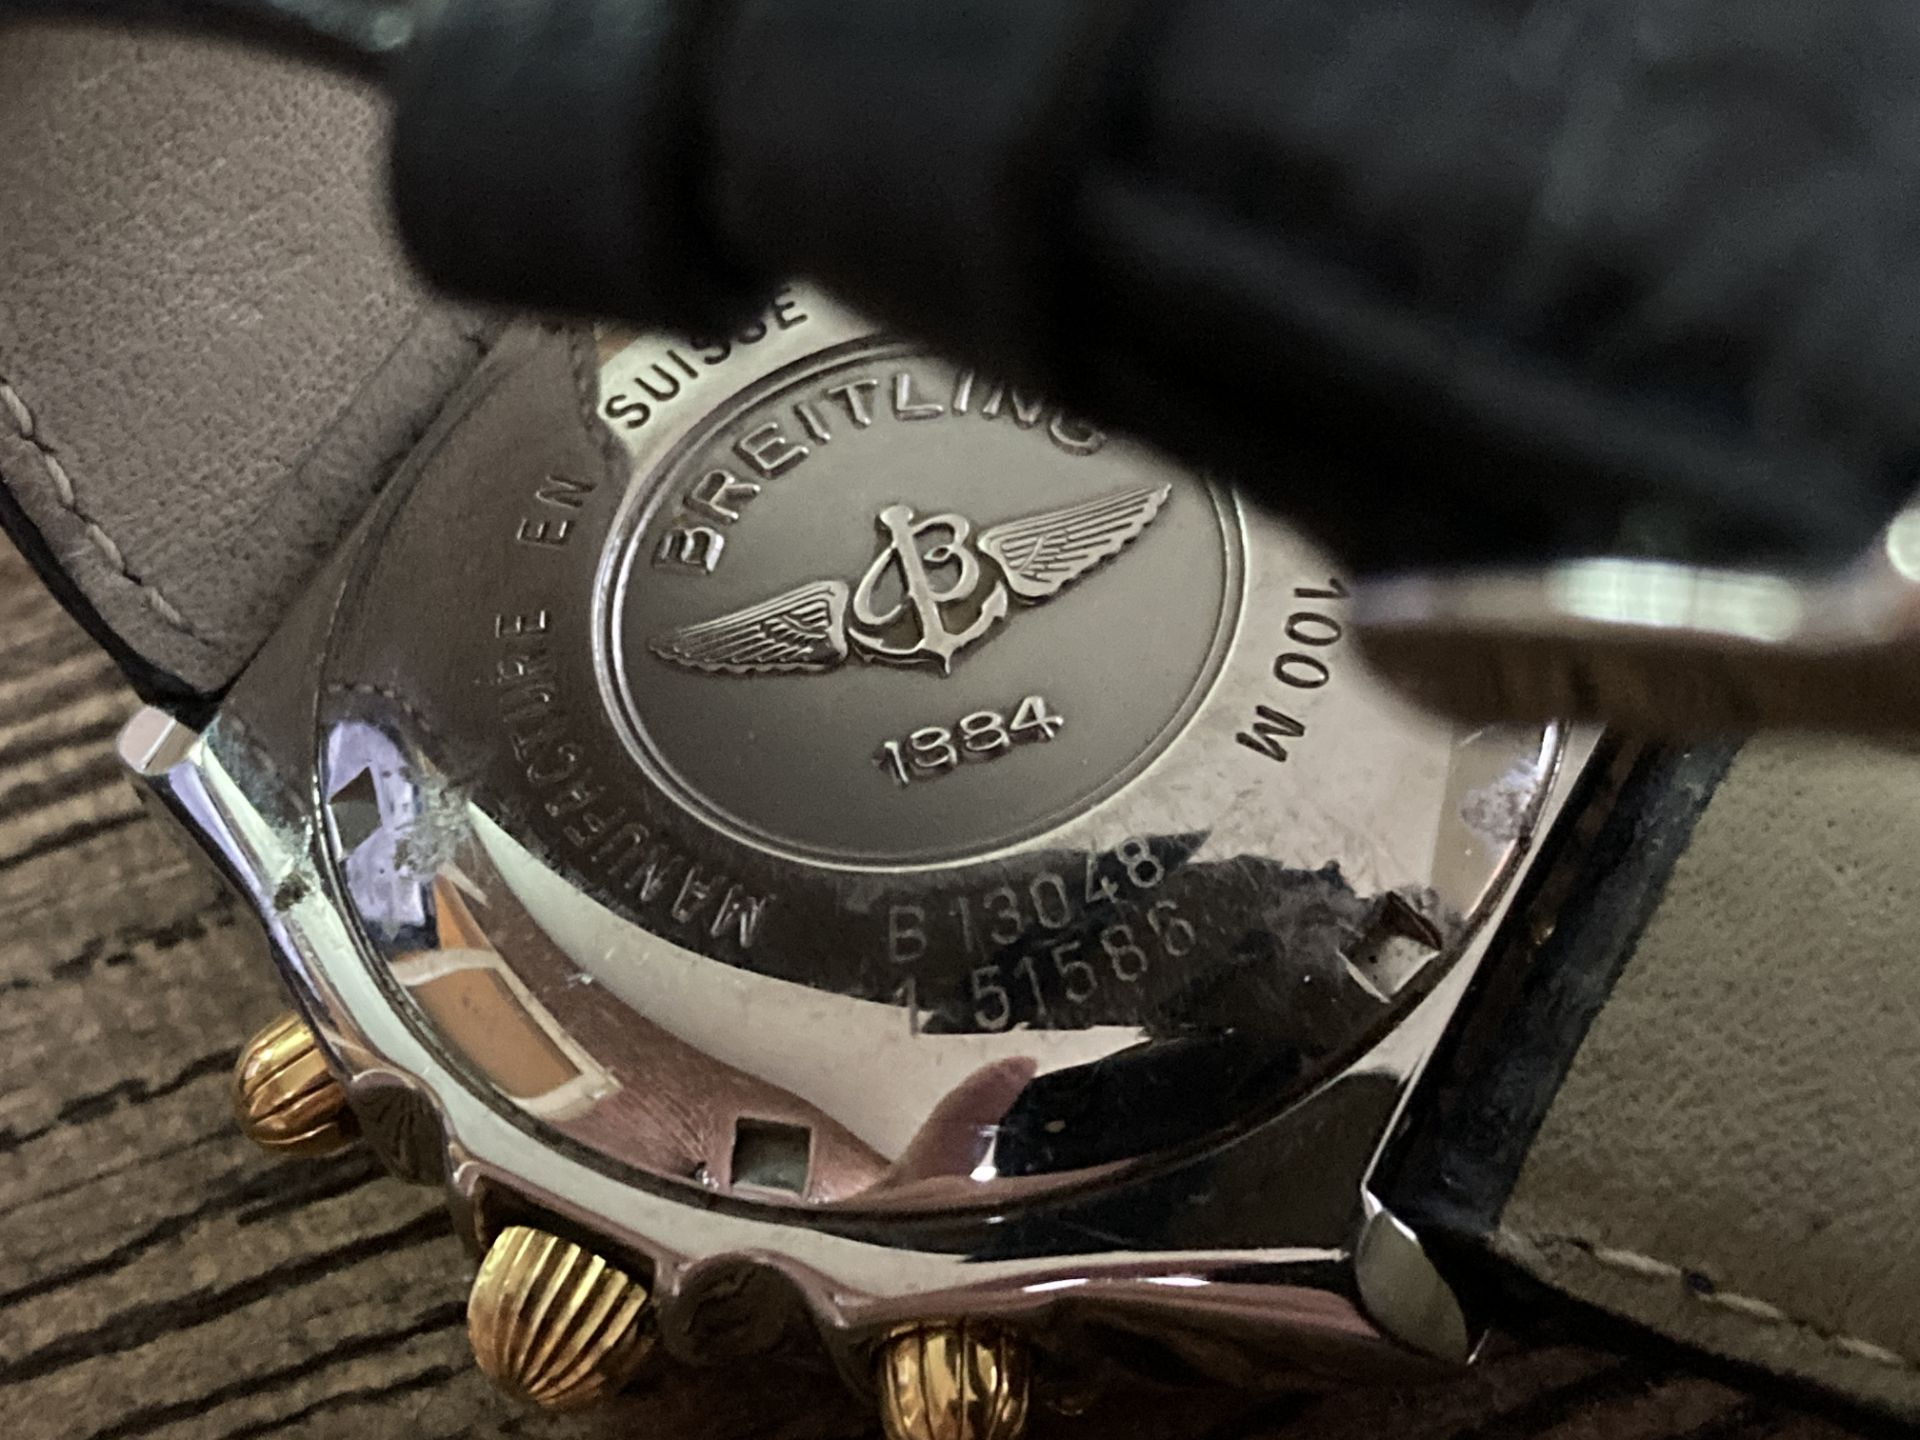 BREITLING B13048 STEEL AND GOLD CHRONO - 39MM APPROX. - Image 3 of 3